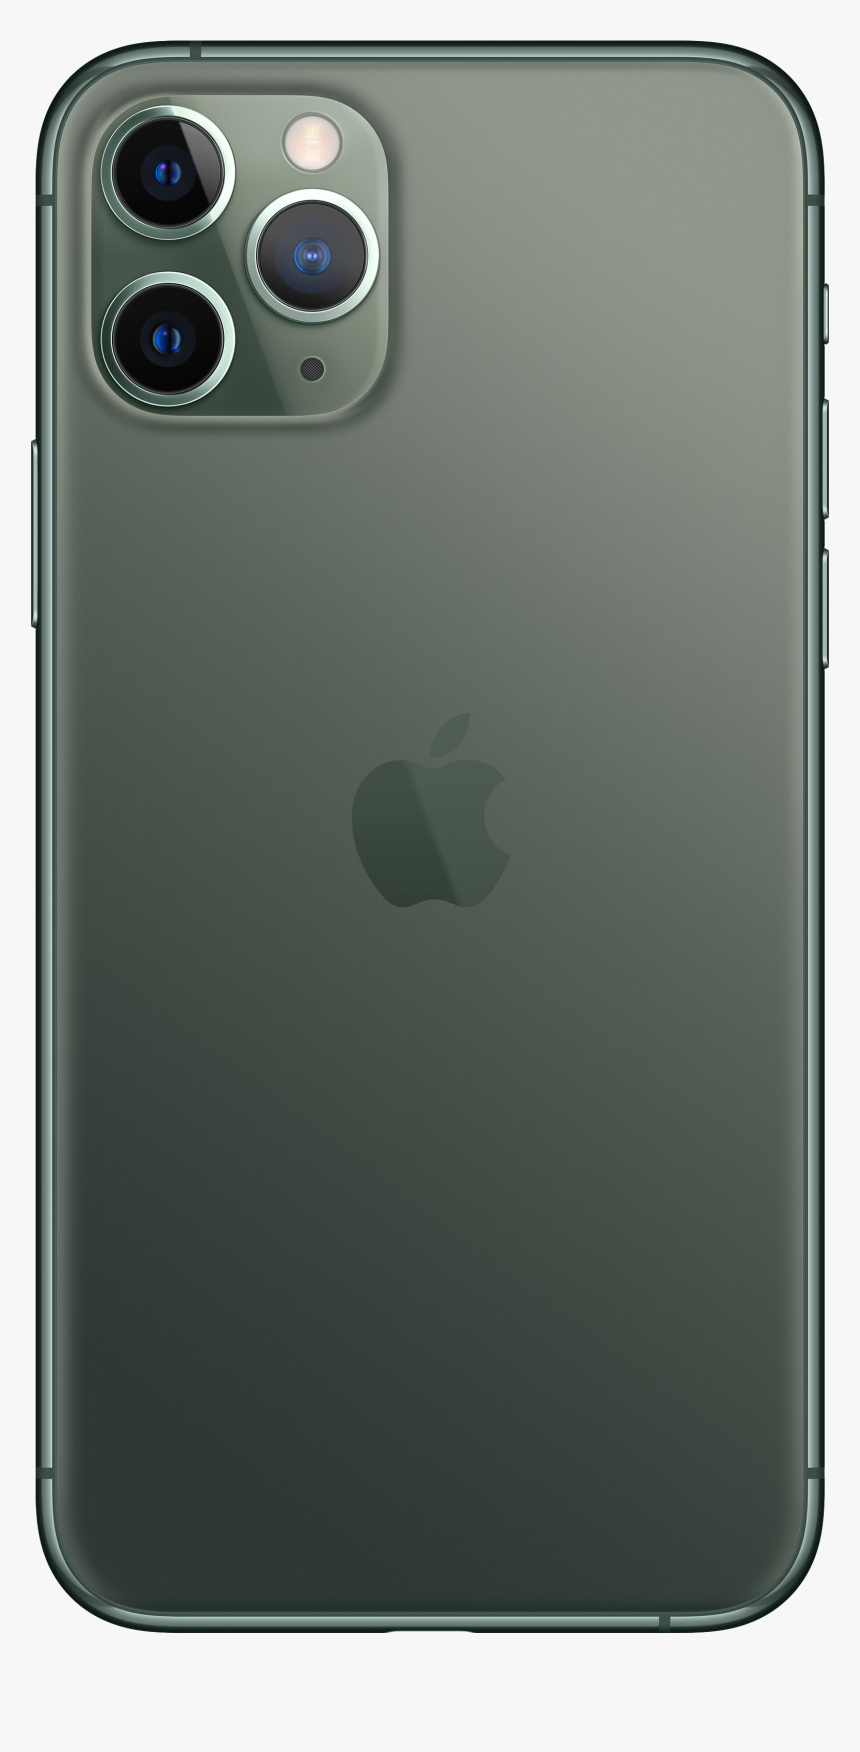 Iphone 11 Pro Max, HD Png Download, Free Download